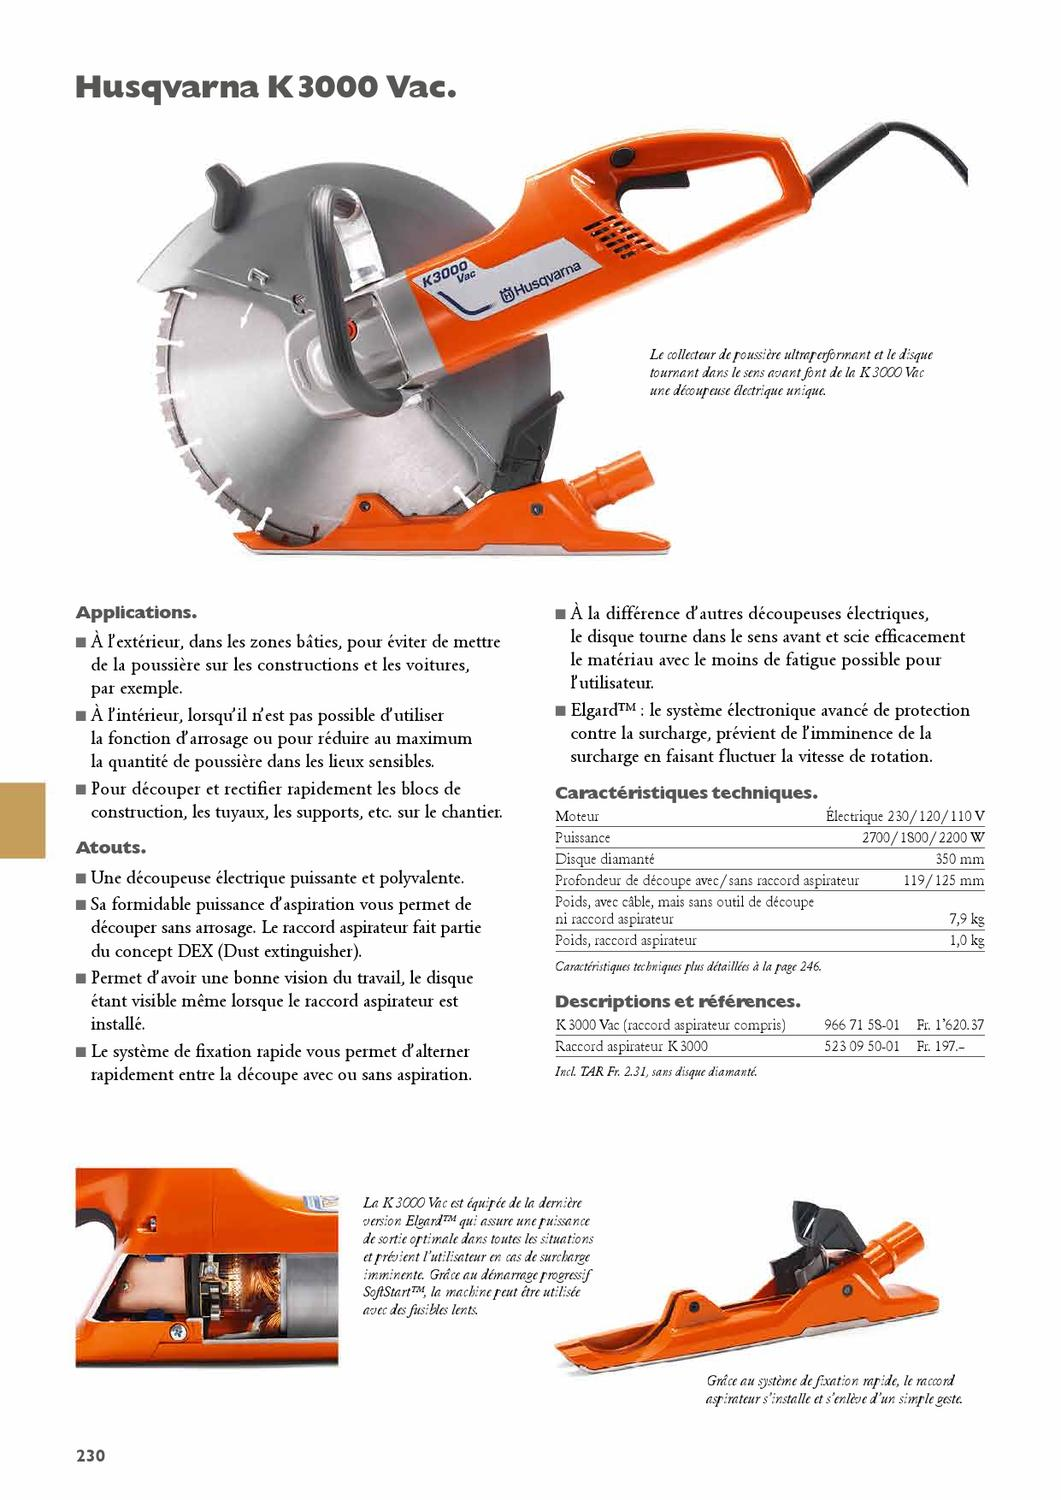 Aspirateur D Extérieur Hcp Cat 2013 Ch Fr 1 1 By Husqvarna Construction Products Issuu